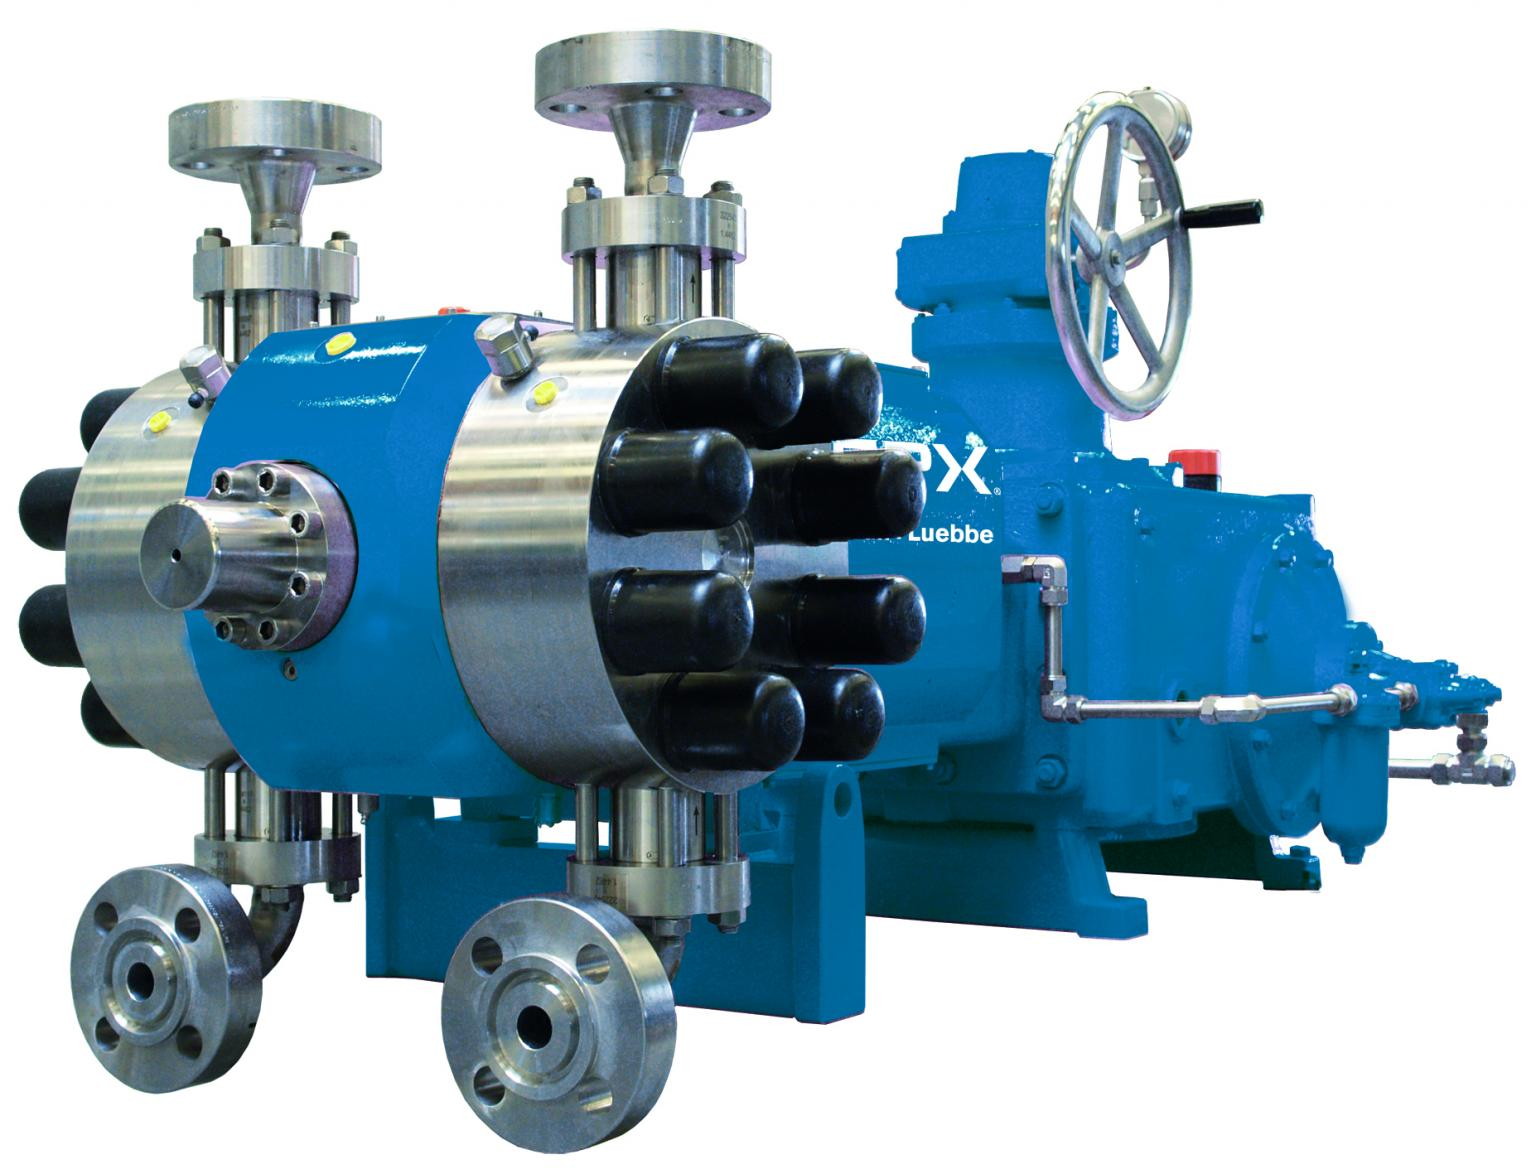 The NOVADOS B pump with a double acting diaphragm pump (NOVADOS B pump with a double acting diaphragm pump head